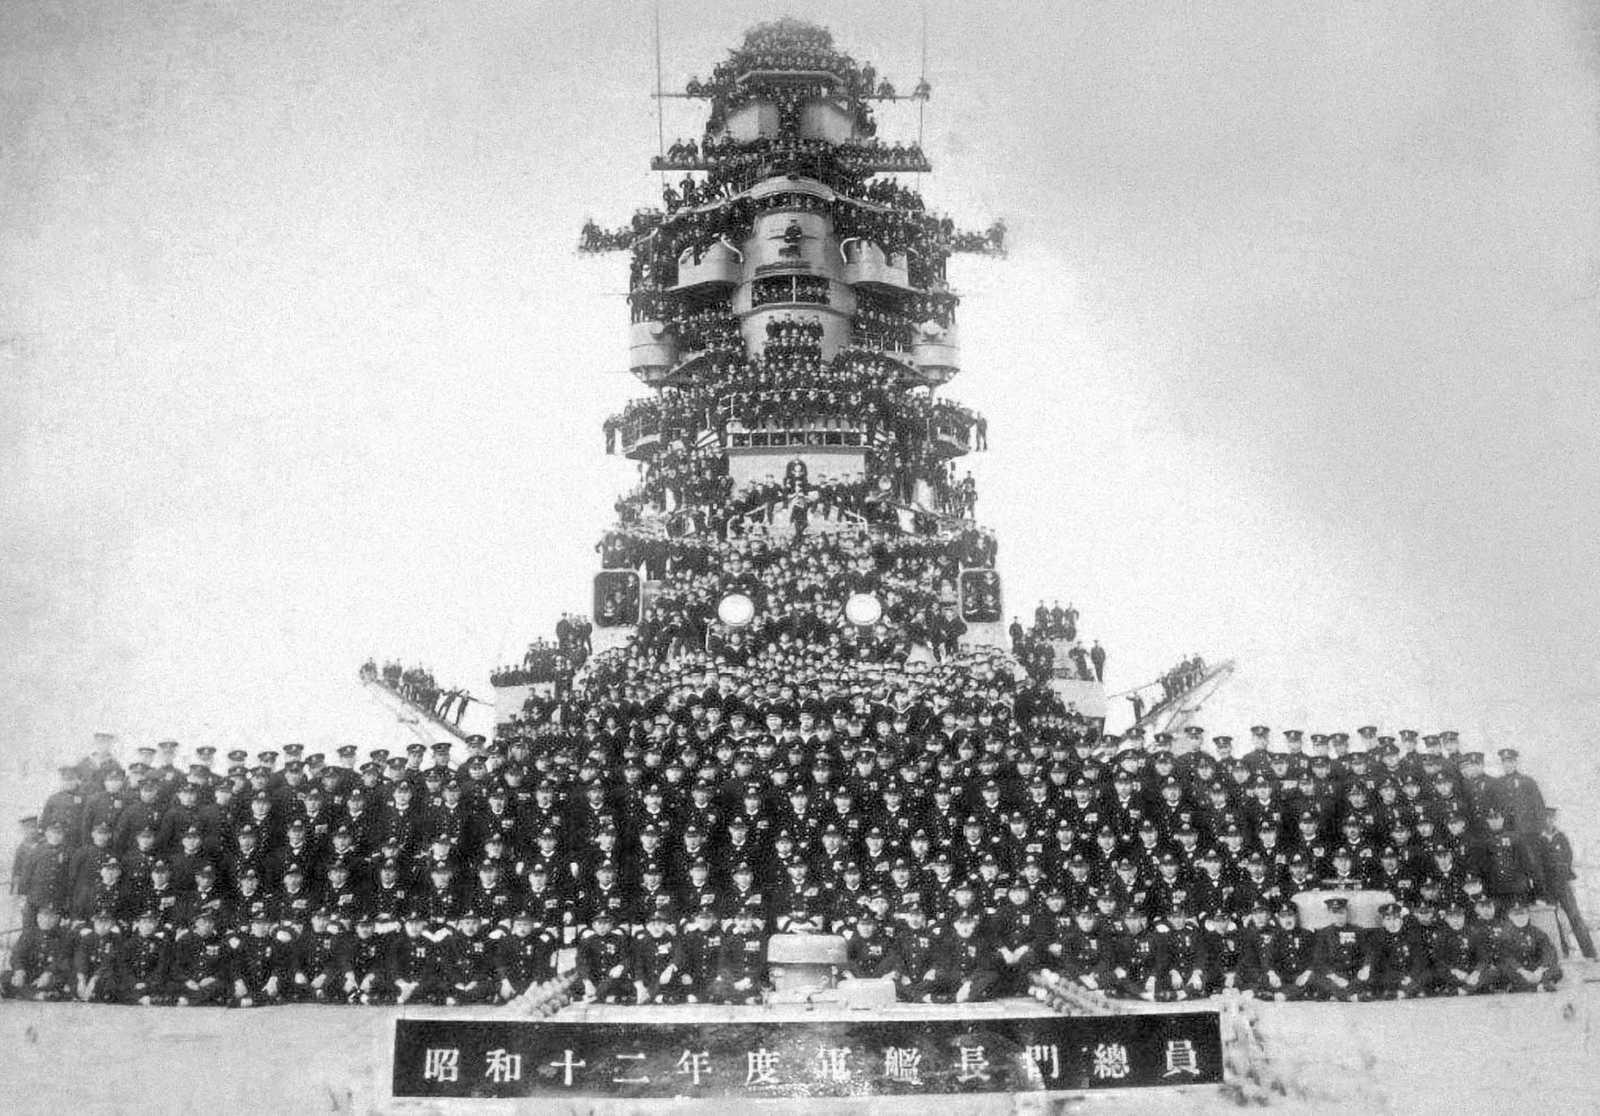 Black and white photo of the battleship hull crowded by Japanese soldiers  IJN battleship Nagato and her all crewmembers. Taken in 1937. (Public Domain)